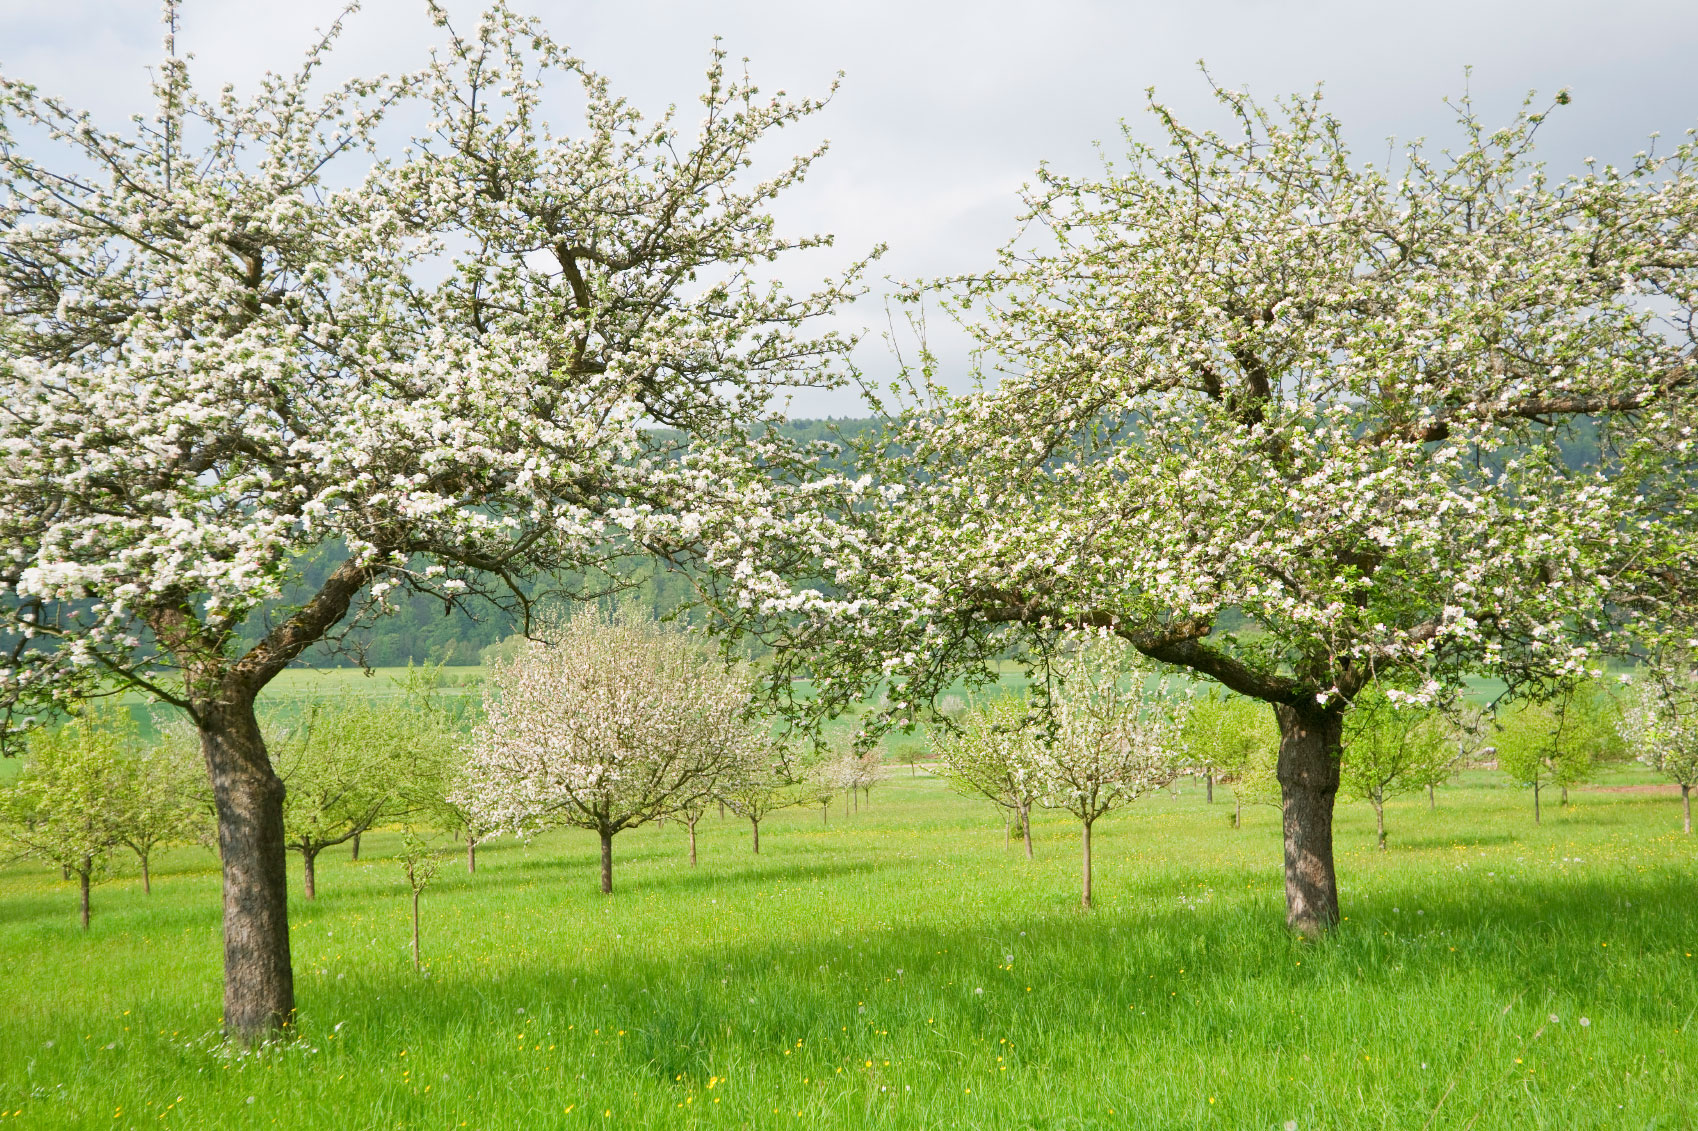 Growing Apples ? Learn About Cross Pollination Between Apple Trees